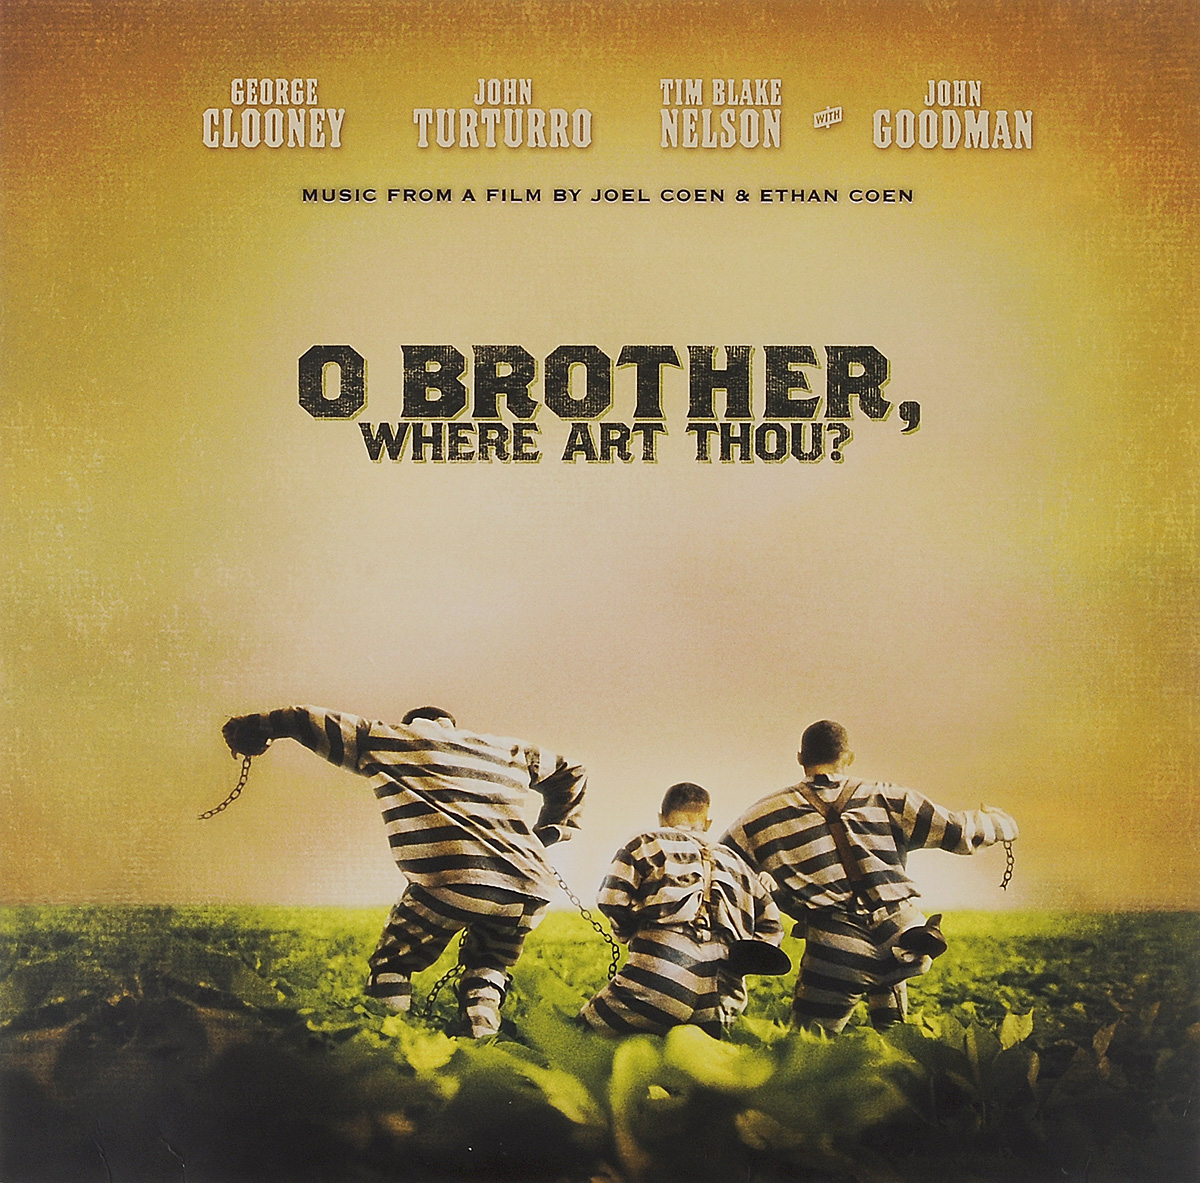 Джеймс Картер,The Prisoners,Harry McClintock,Norman Blake,Элисон Краусс,The Soggy Bottom Boys,Крис Томас Кинг,The Whites,The Cox Family,Ральф Стэнли O Brother, Where Art Thou? Original Motion Picture Soundtrack (2 LP) элисон краусс union station alison krauss